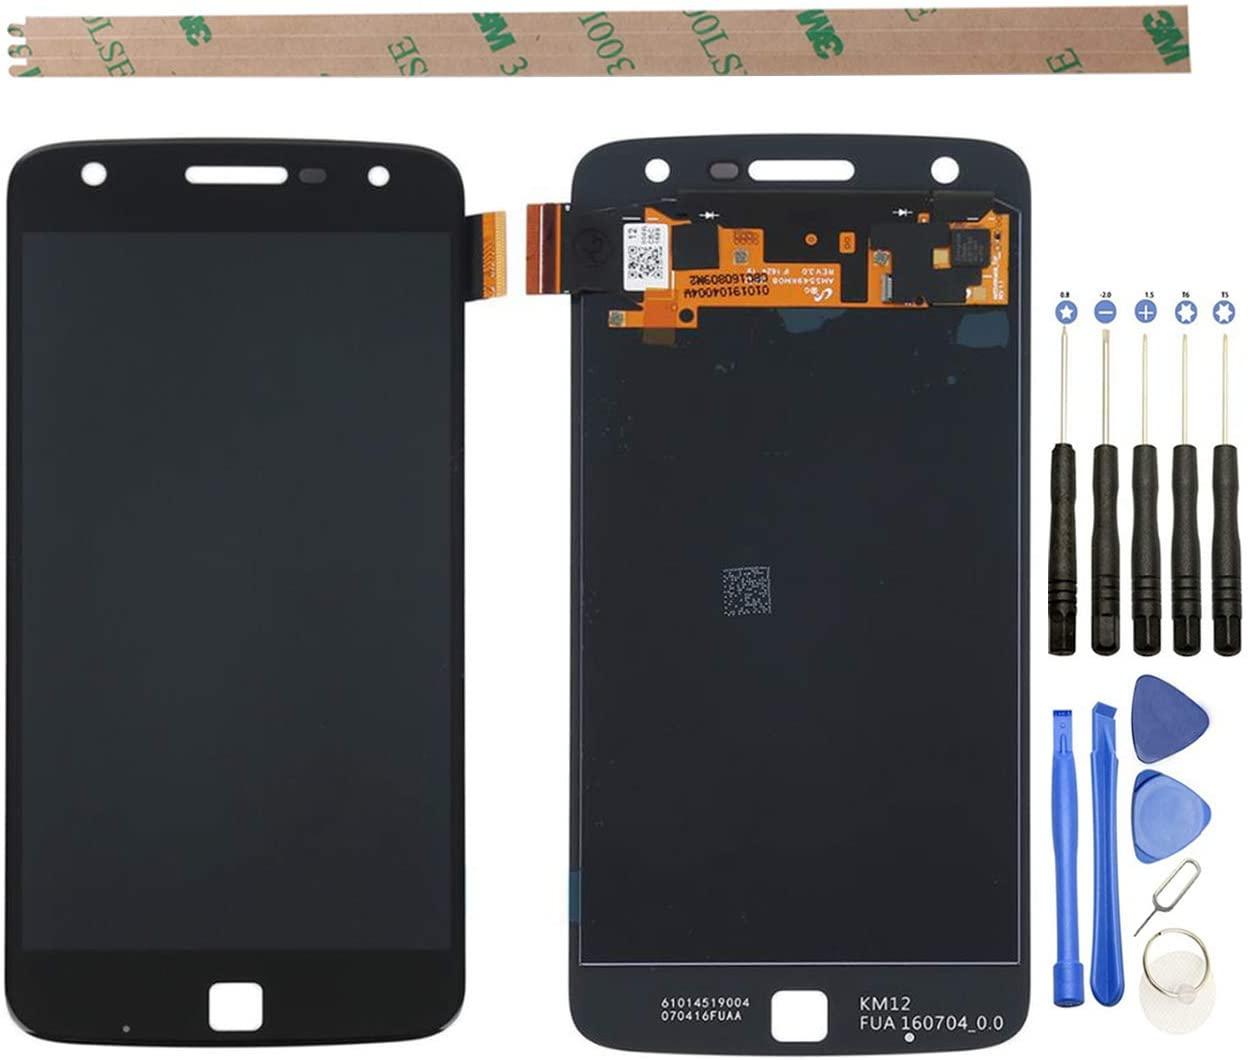 Replacement Assembly for Motorola MOTO Z Play <font><b>XT1635</b></font> <font><b>XT1635</b></font>-01 <font><b>XT1635</b></font>-02 <font><b>XT1635</b></font>-03 LCD <font><b>Display</b></font> and Touch Screen Digitizer Glass image